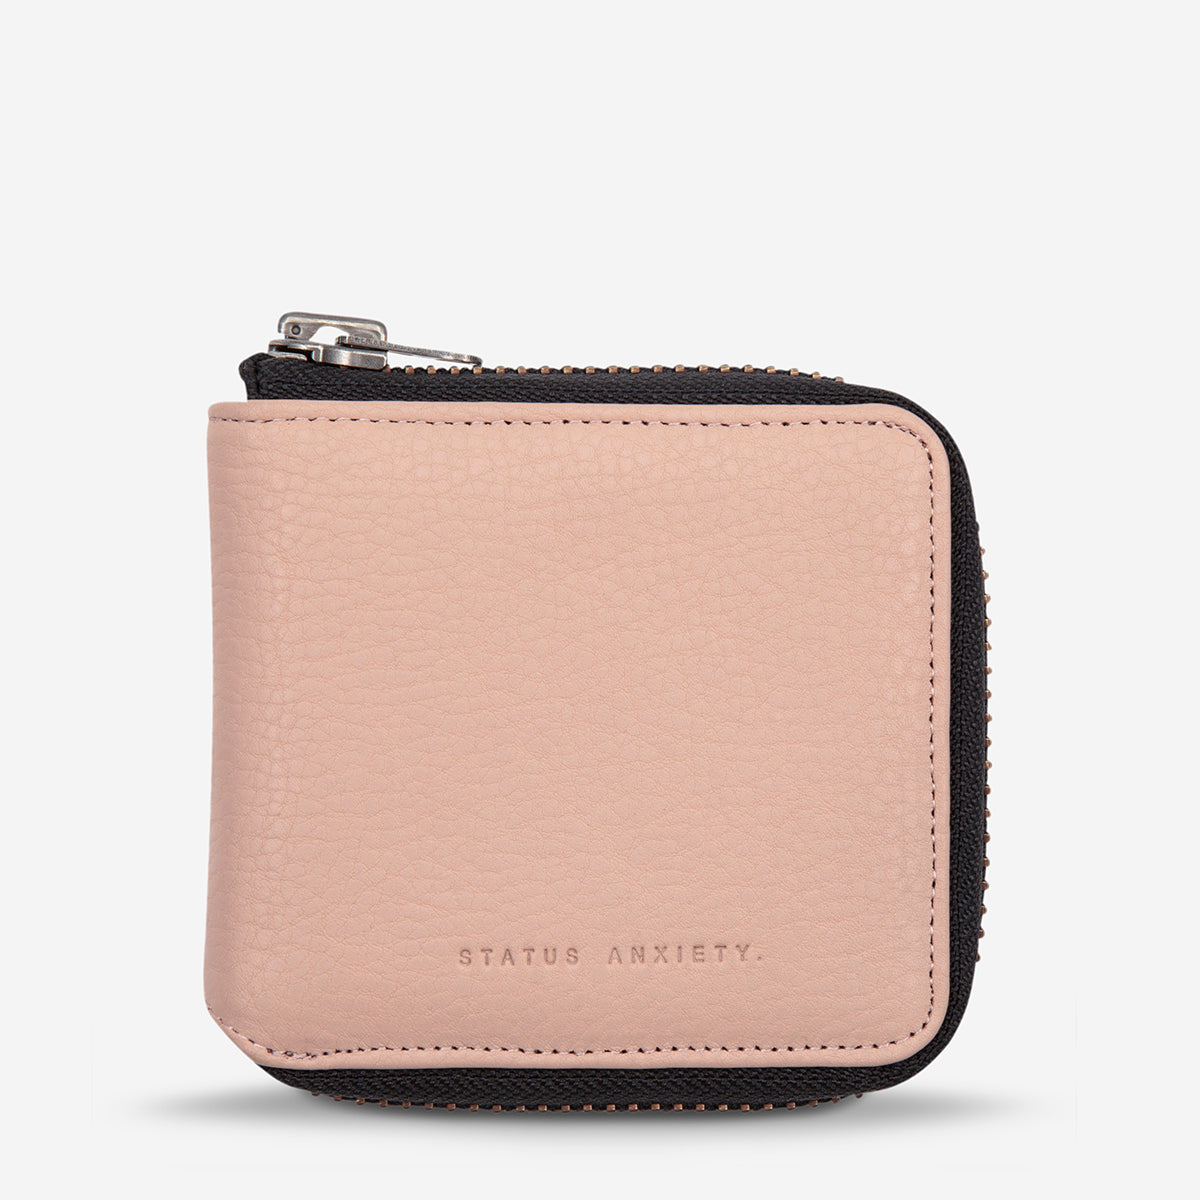 Status Anxiety The Cure Leather Wallet - Dusty Pink